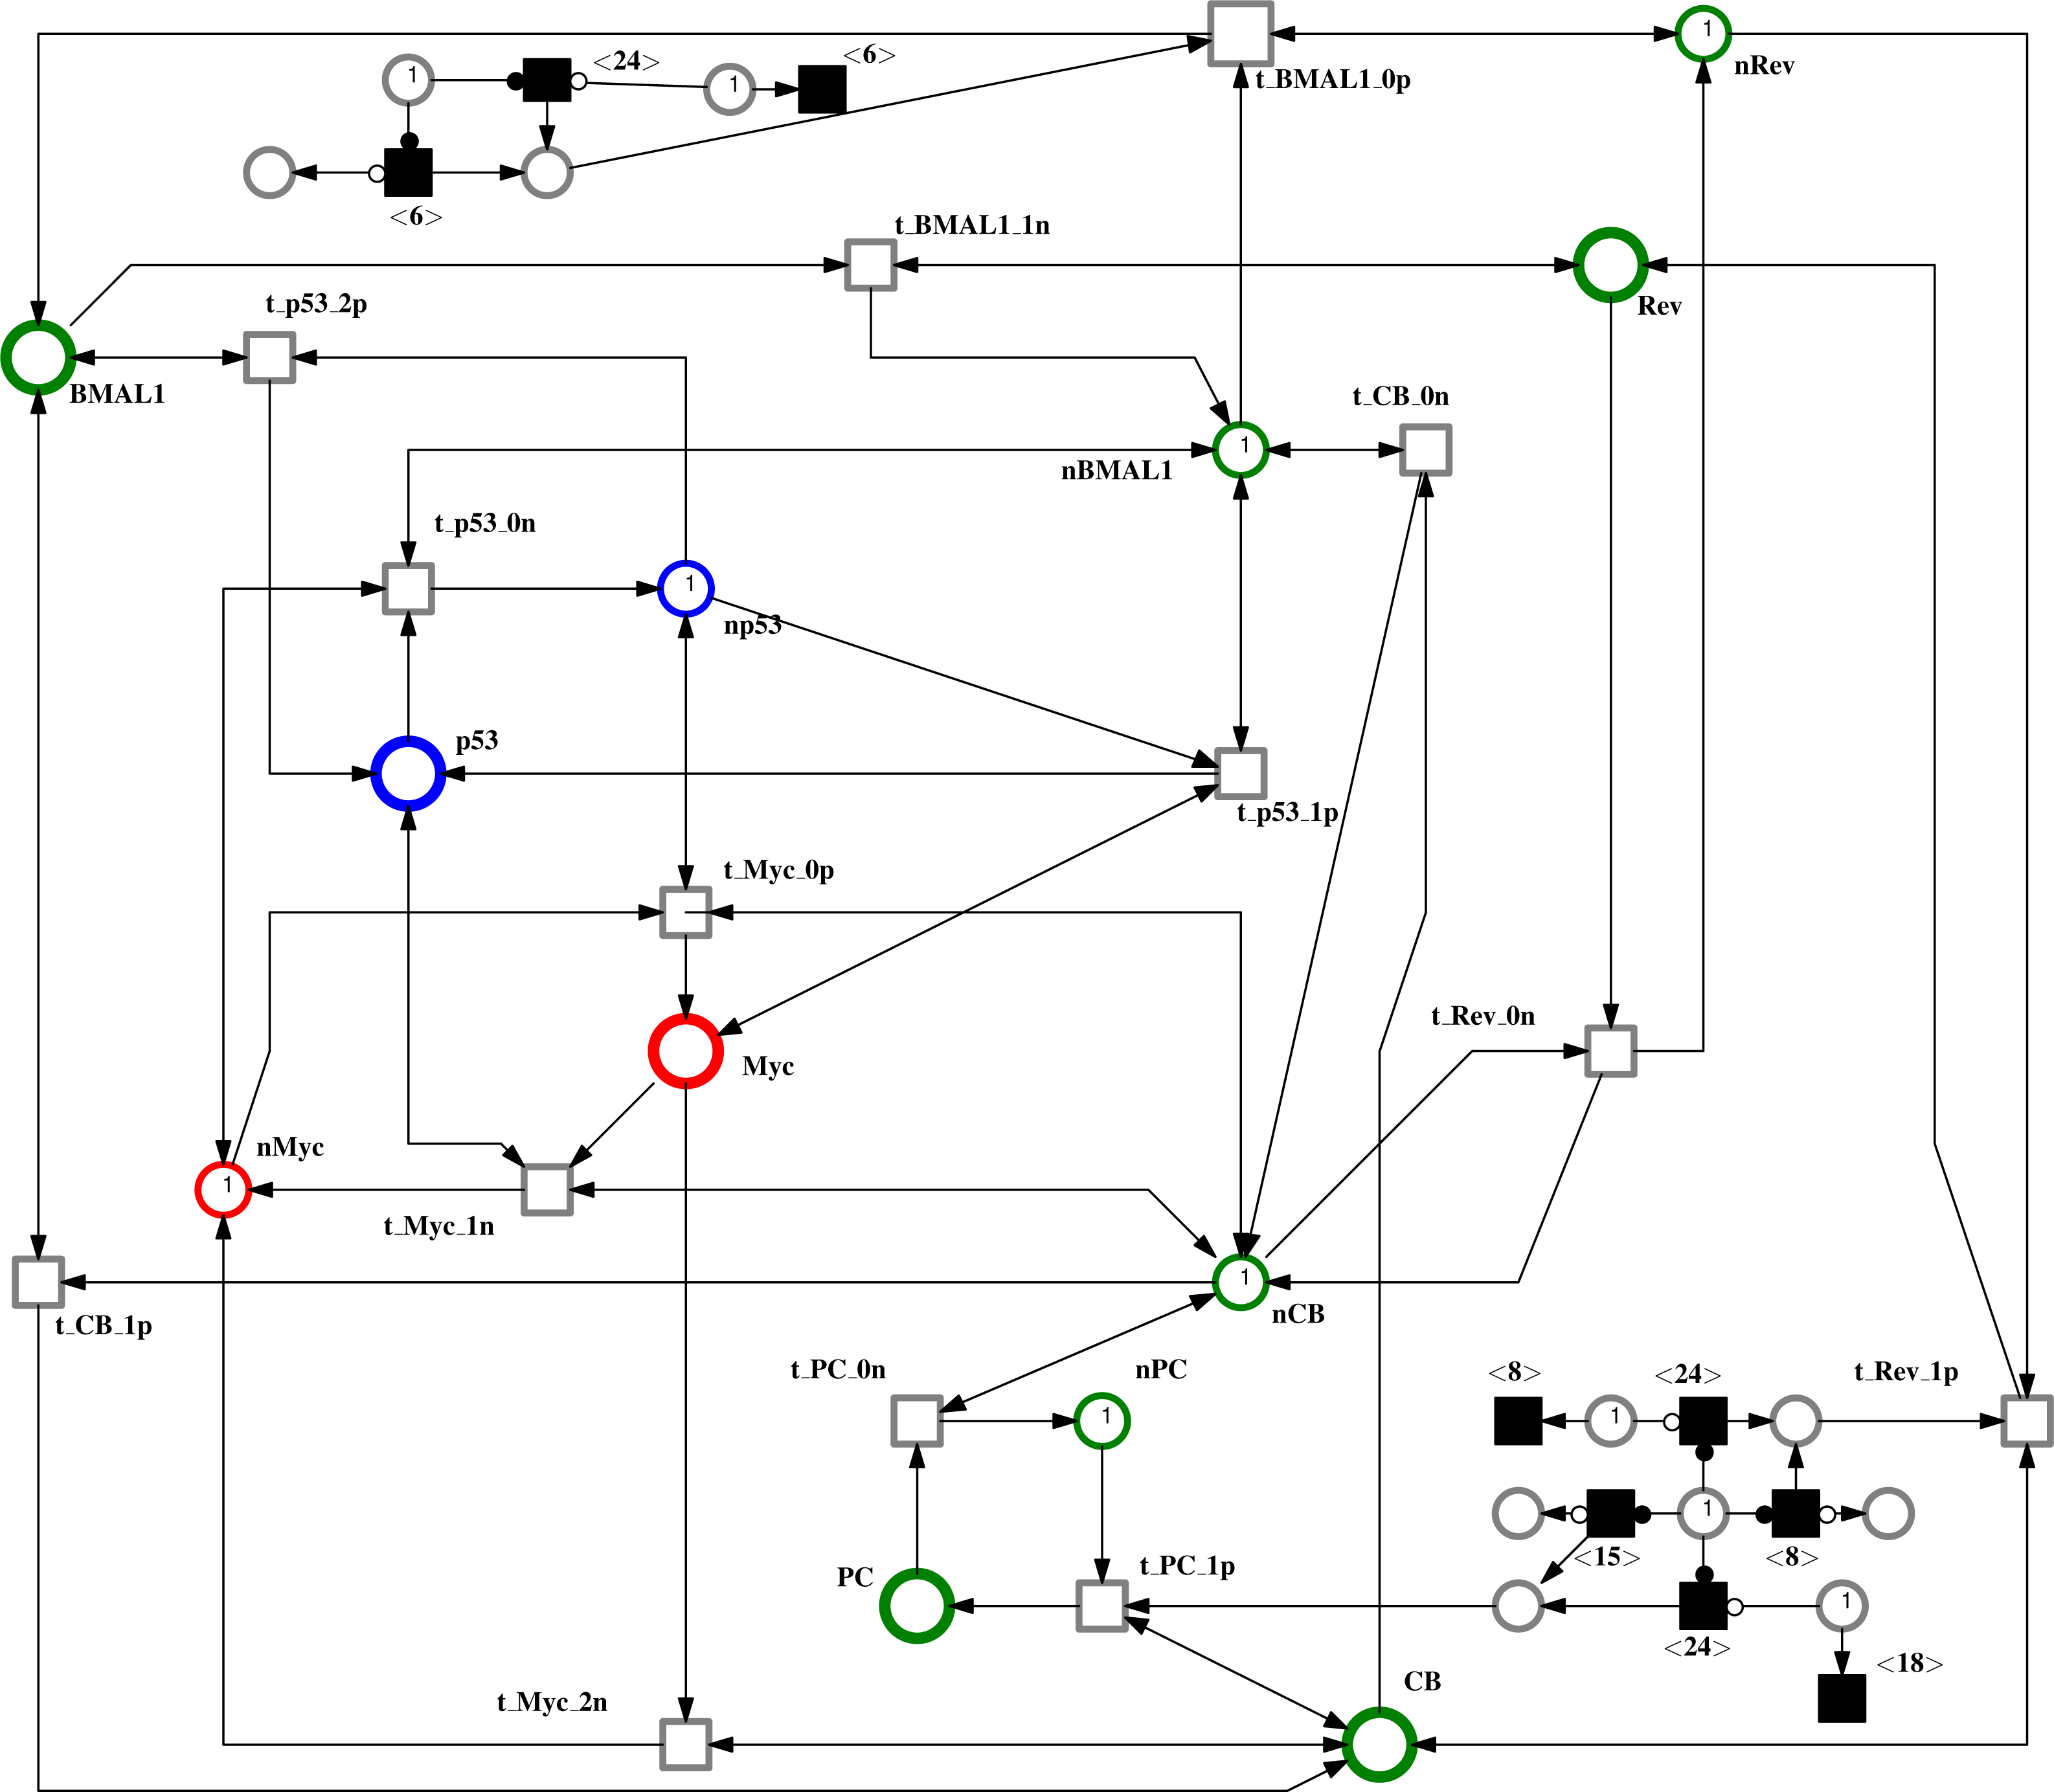 Modeling And Analysis Of The Impacts Jet Lag On Circadian Rhythm Are Column Wise Internally Connected Model Circuit Diagram Download Full Size Image